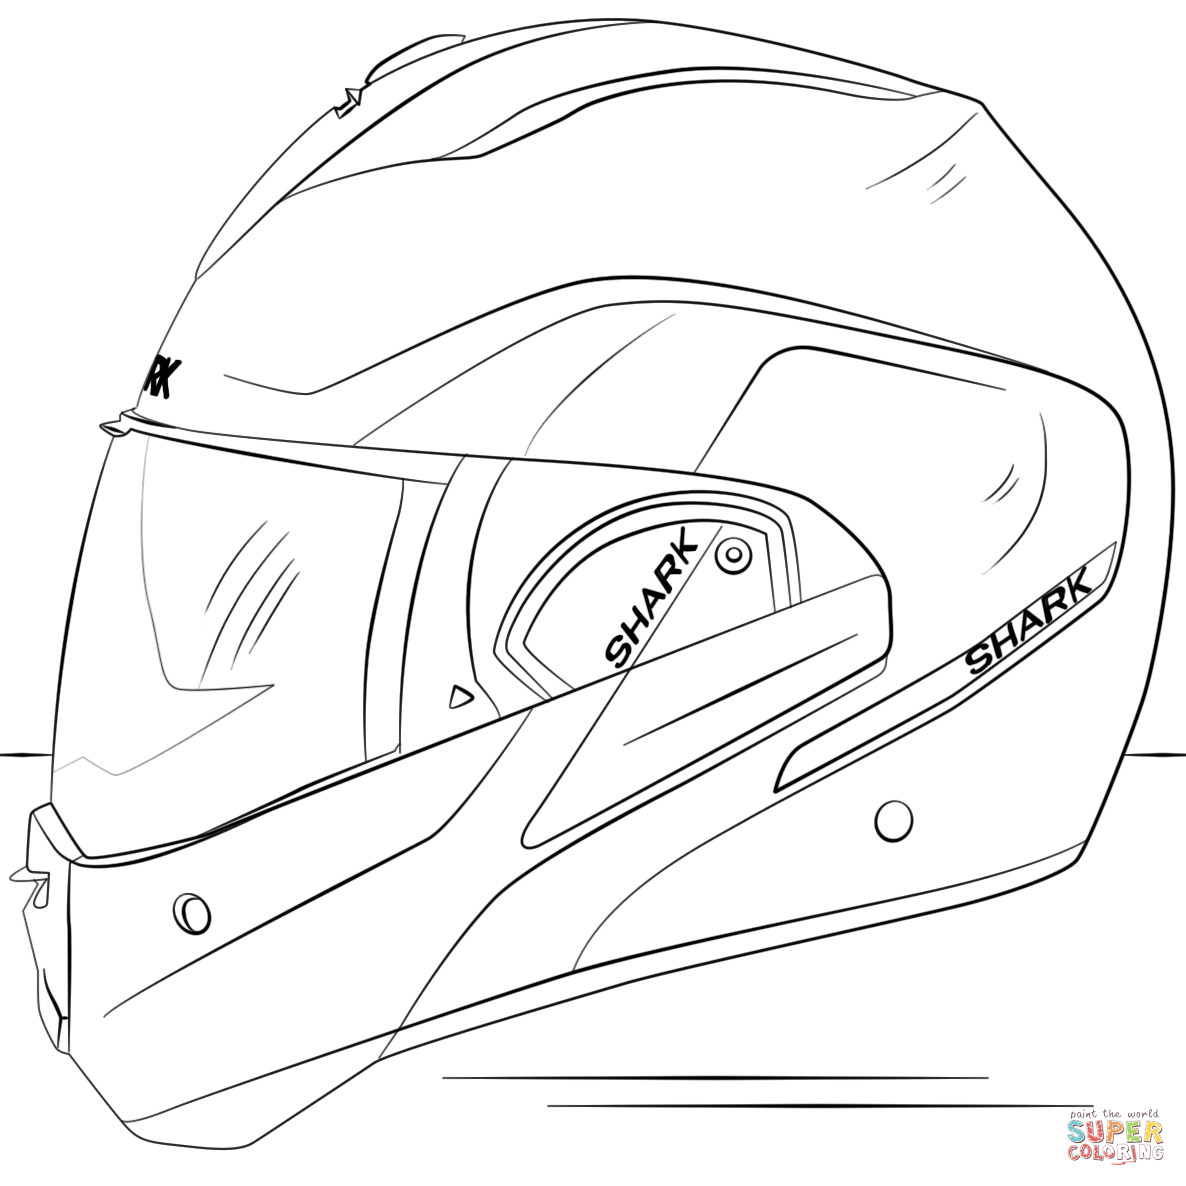 motocross helmet drawing at getdrawings com